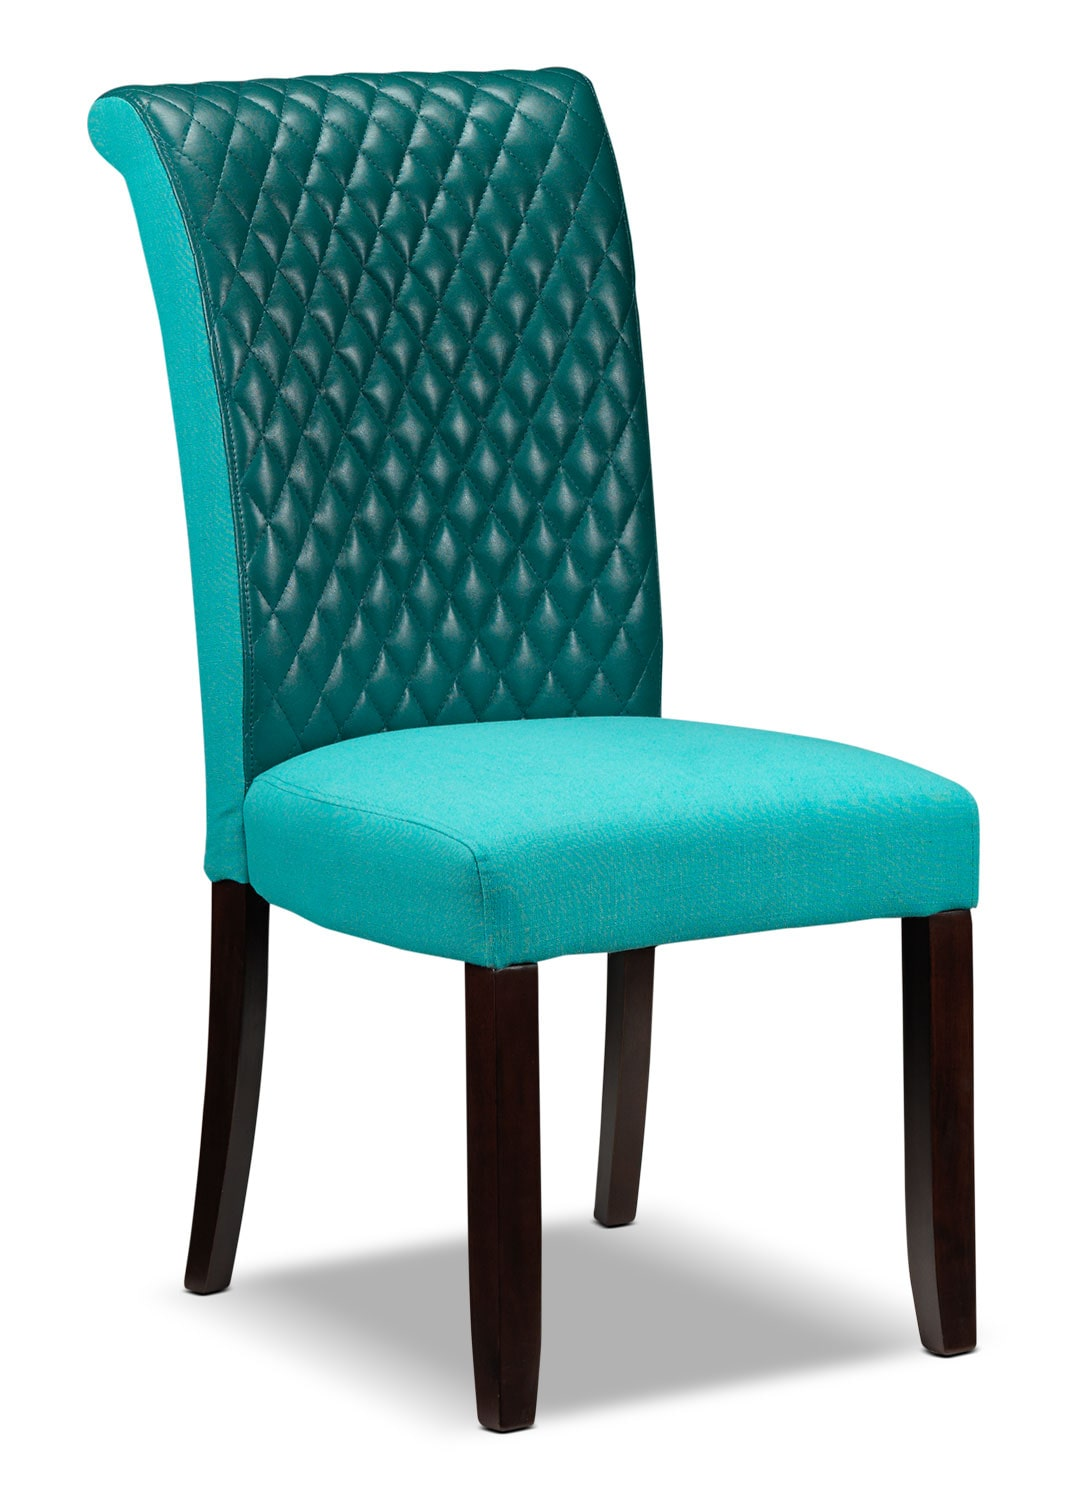 Flora Chair - Teal